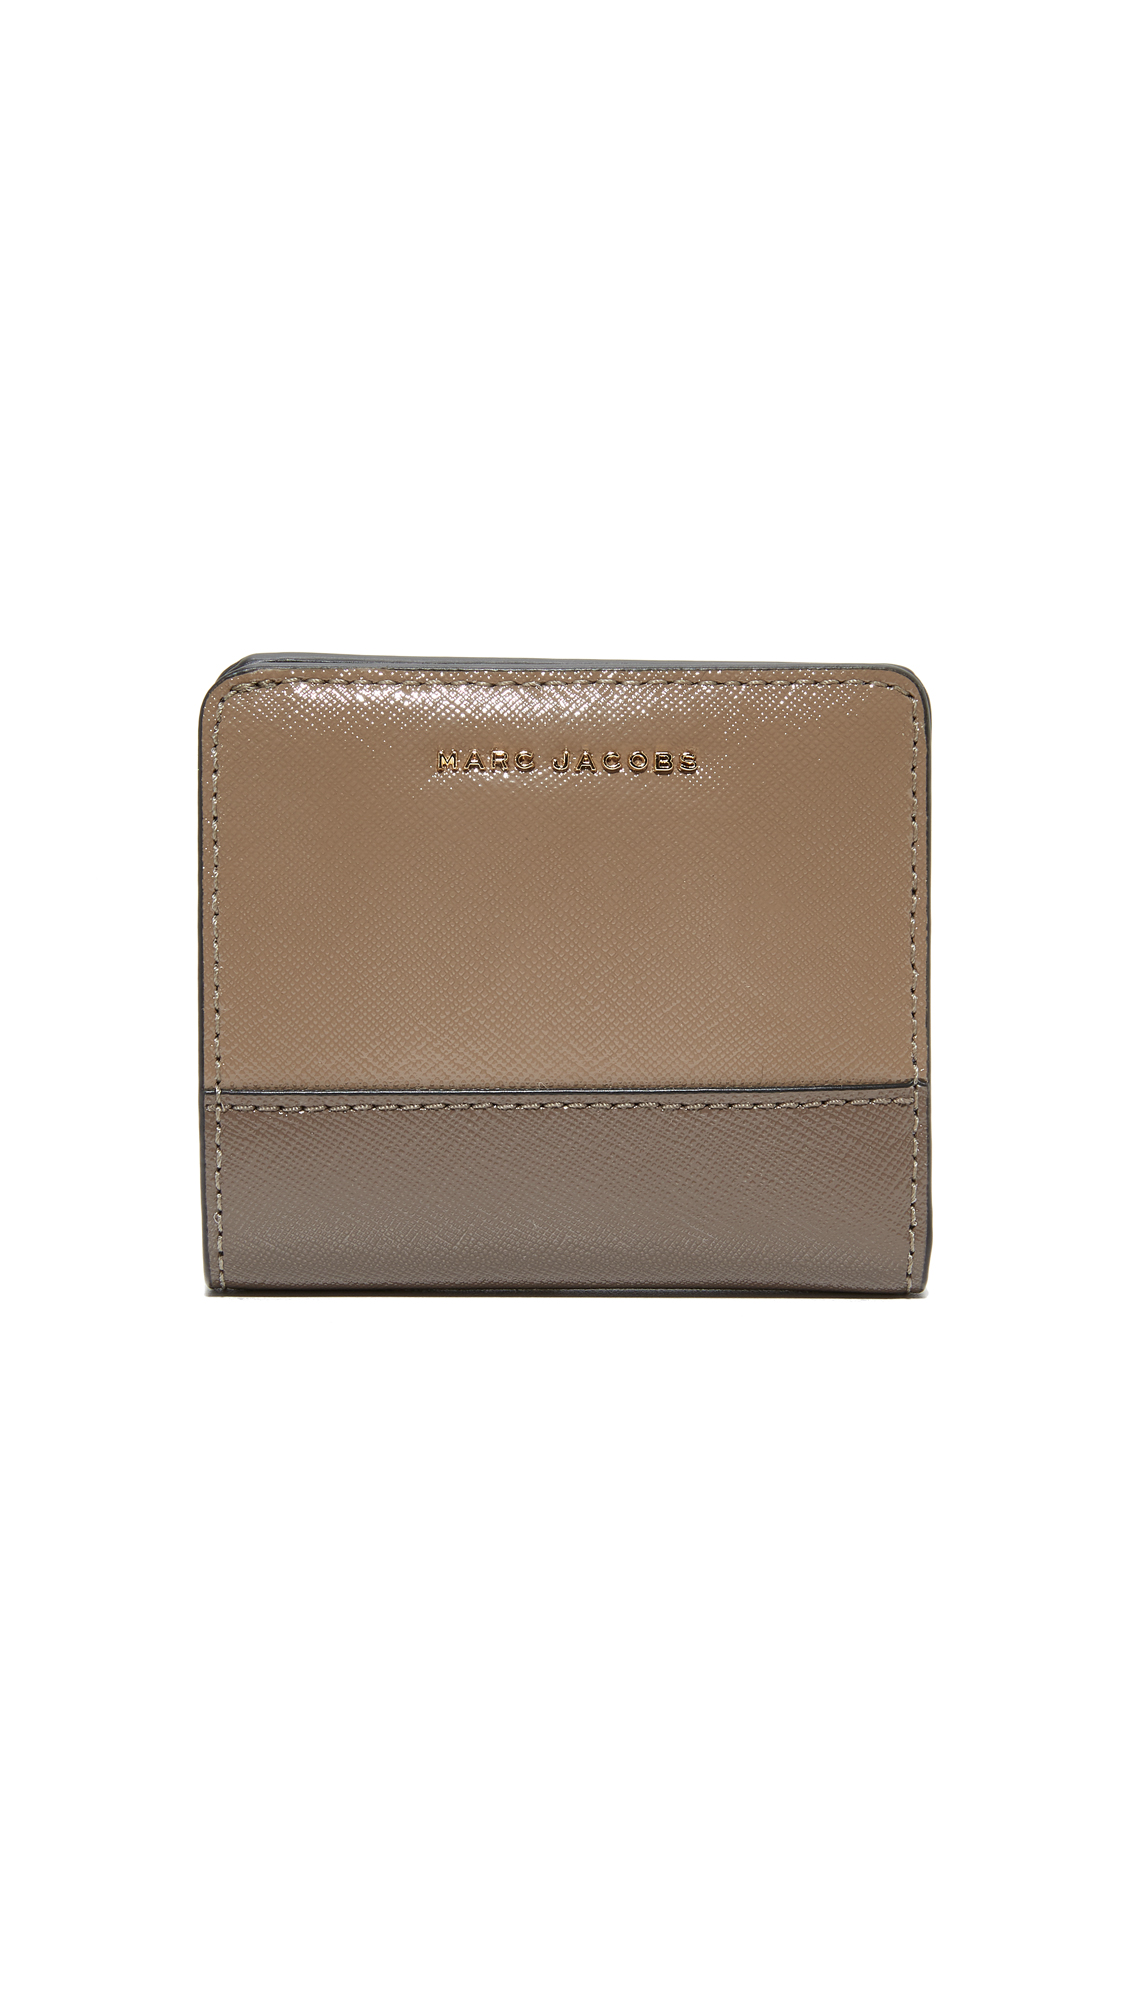 Marc Jacobs Open Face Billfold - French Grey Multi